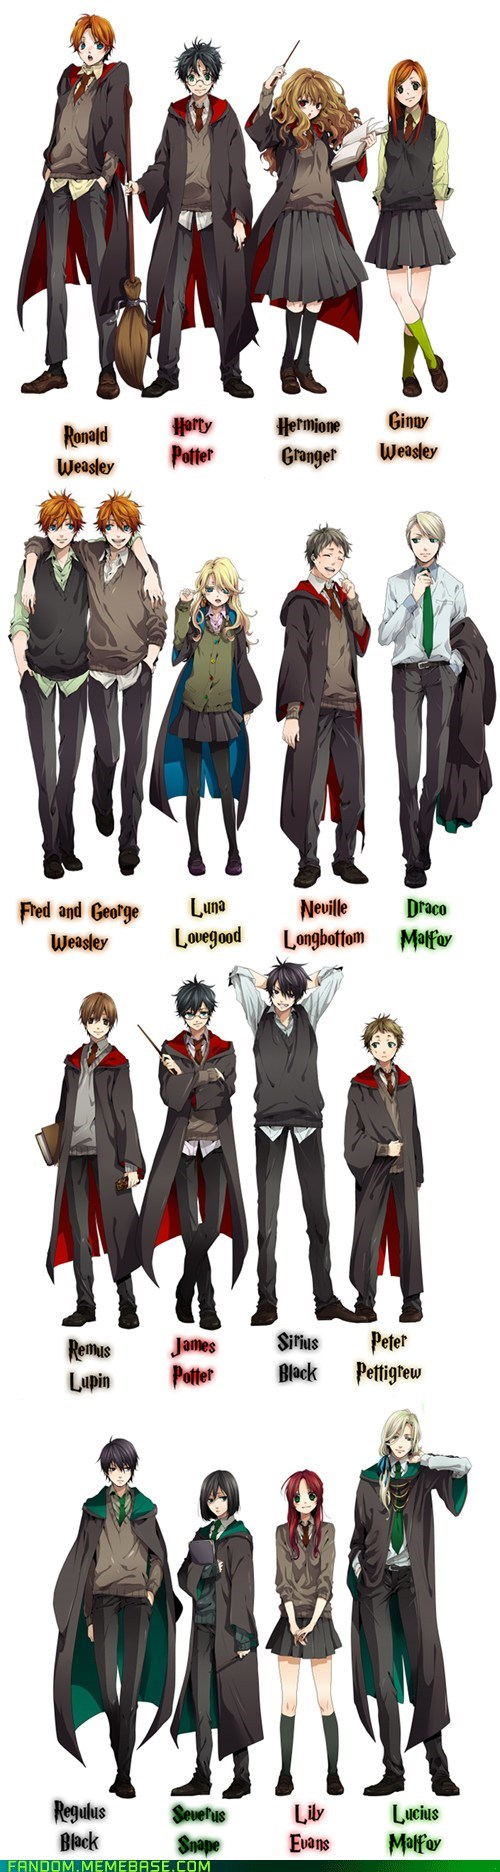 anime style best of week Fan Art Harry Potter weasleys - 5650485248